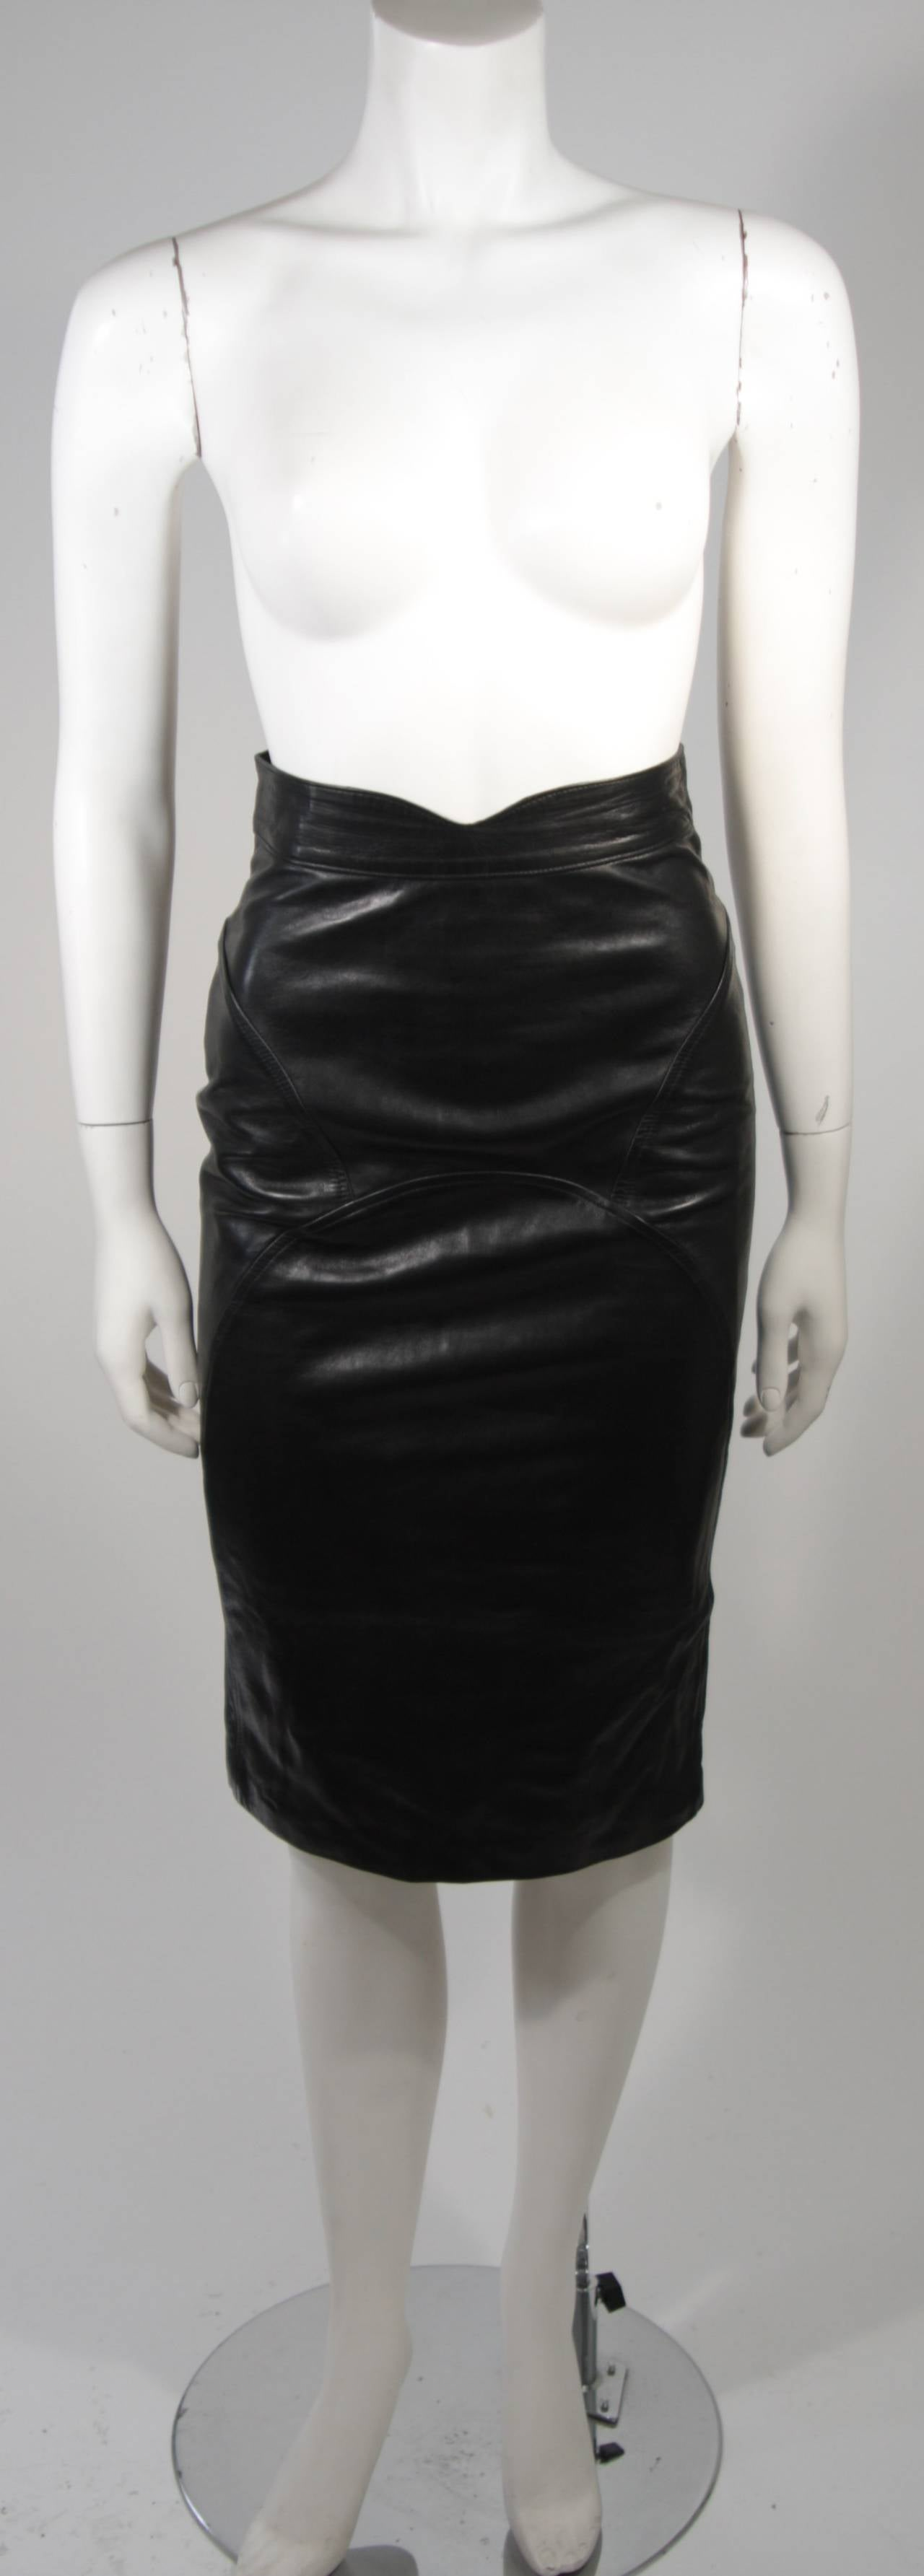 Jean Claude Jitrois Black Leather Skirt Size Extra Small 2